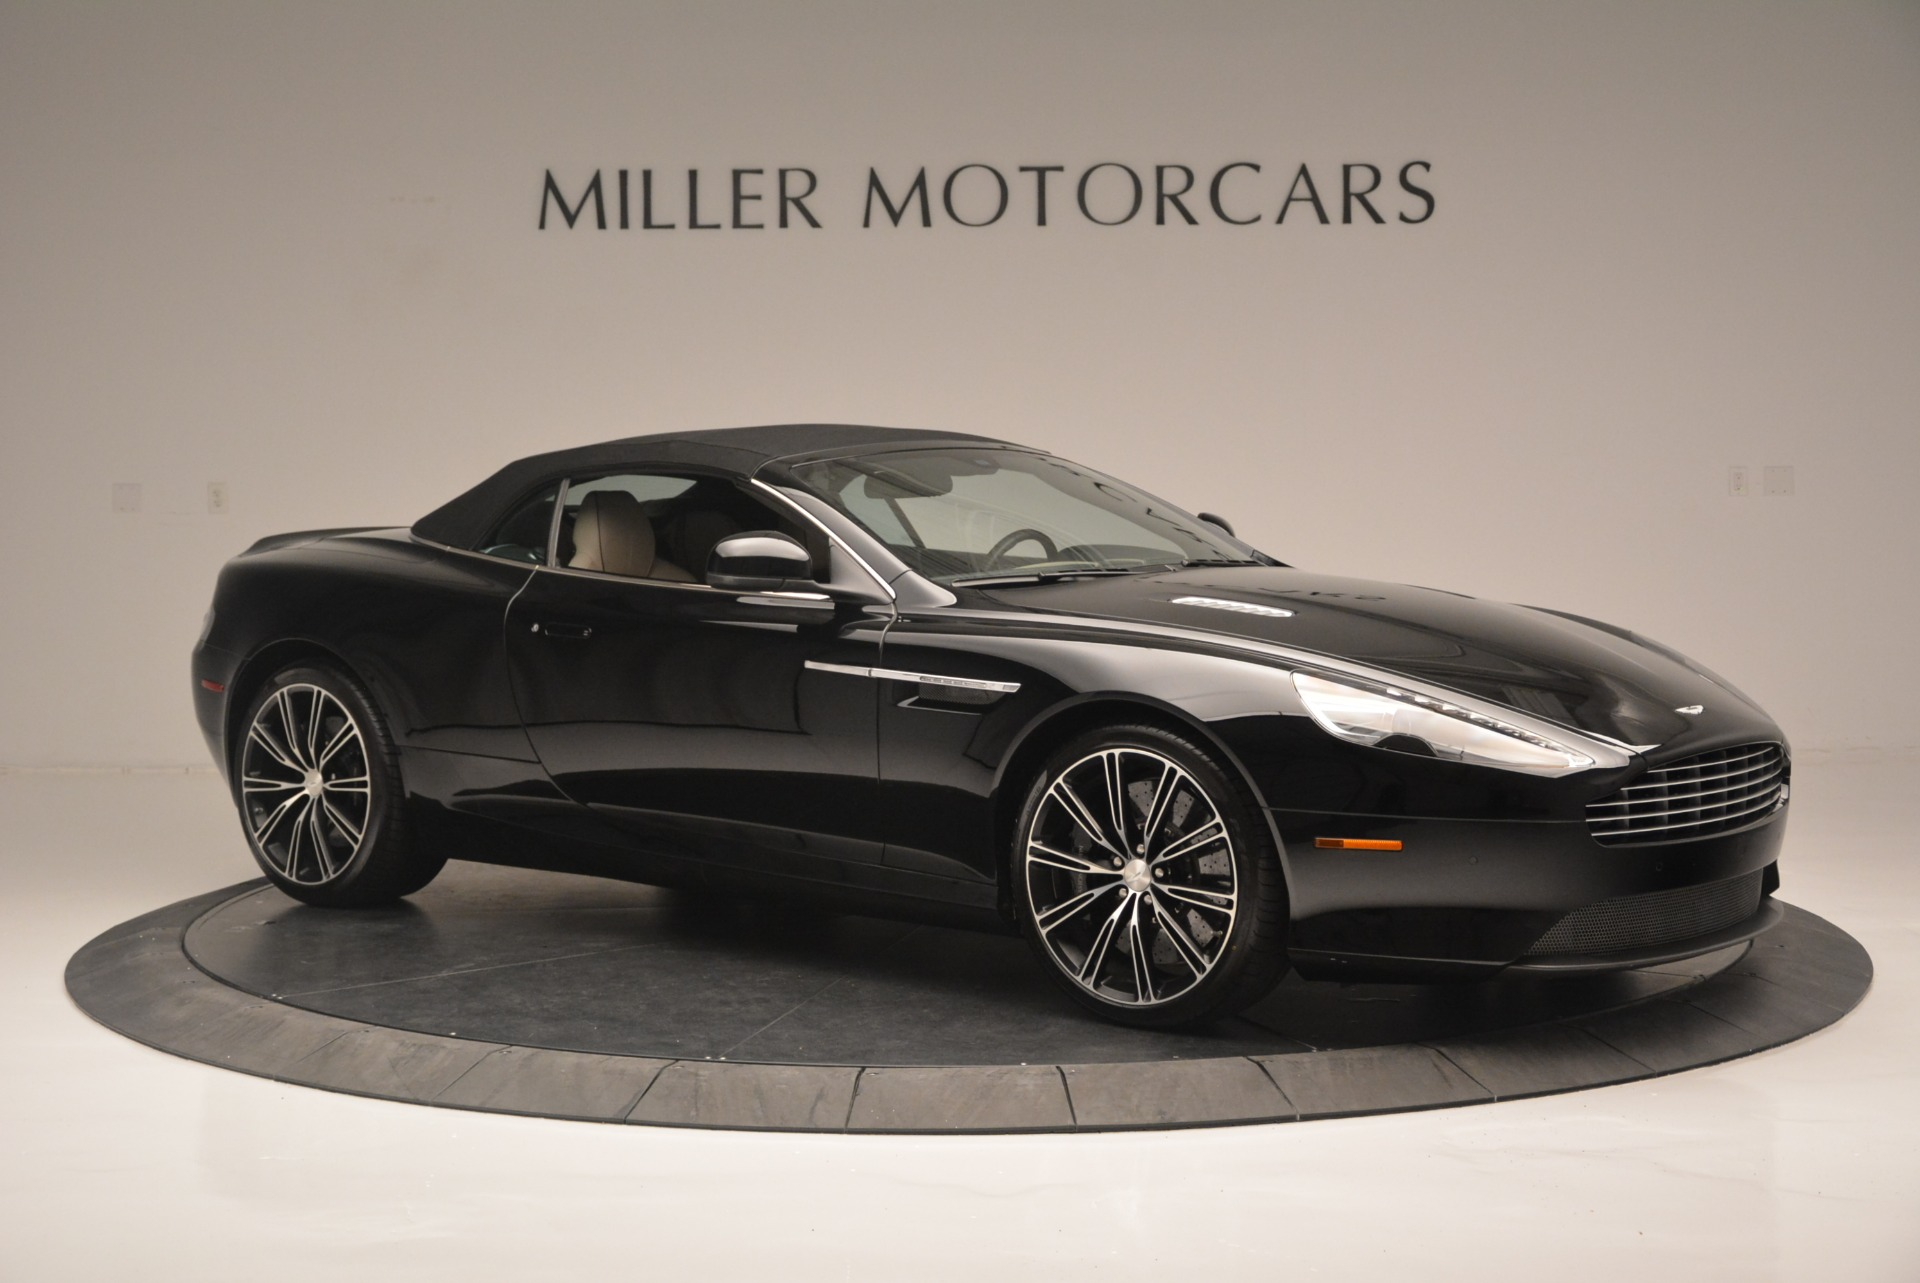 Used 2015 Aston Martin DB9 Volante For Sale In Westport, CT 2318_p17